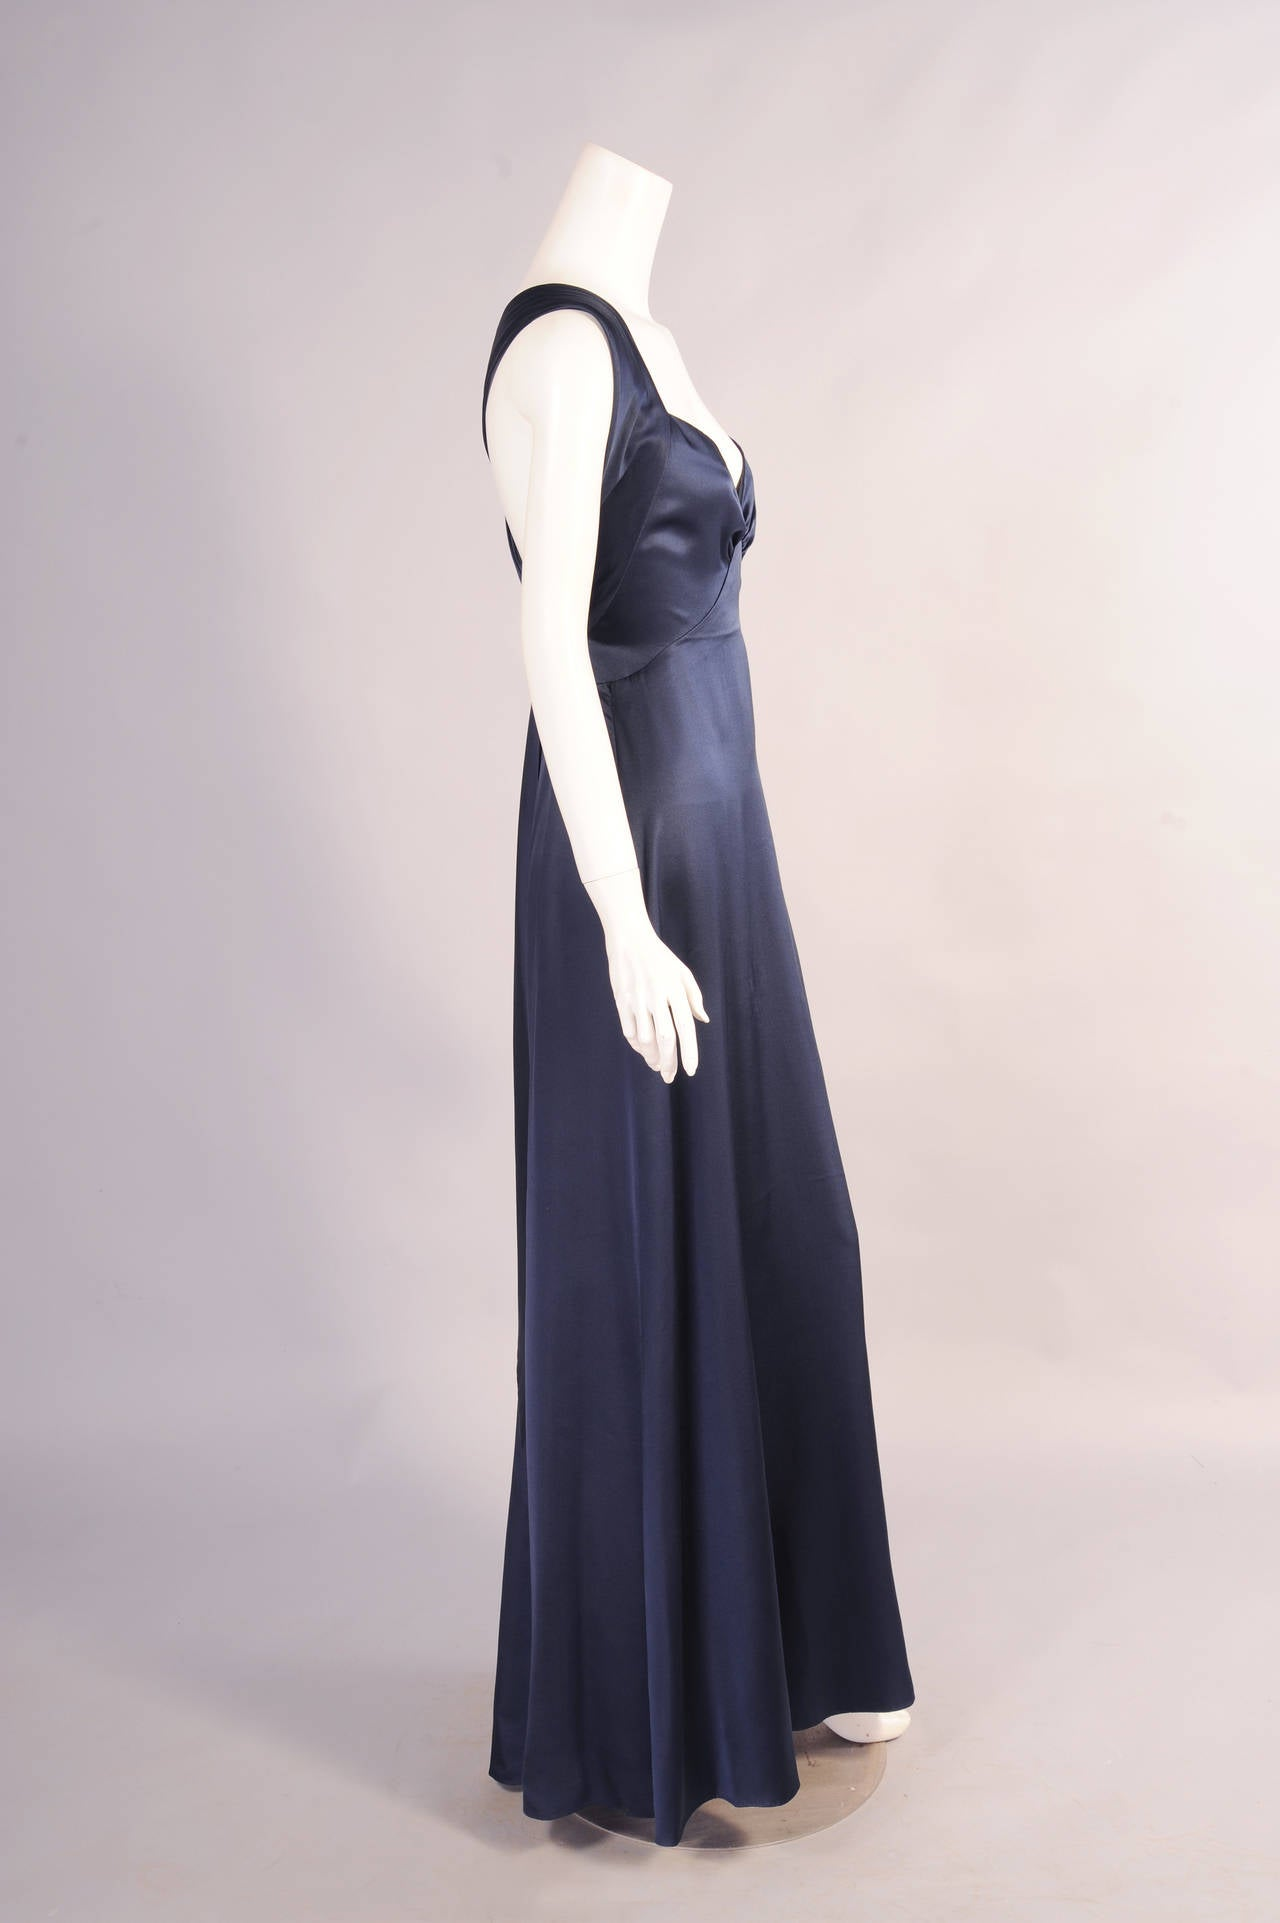 yves saint laurent numbered haute couture evening gown for sale at 1stdibs. Black Bedroom Furniture Sets. Home Design Ideas